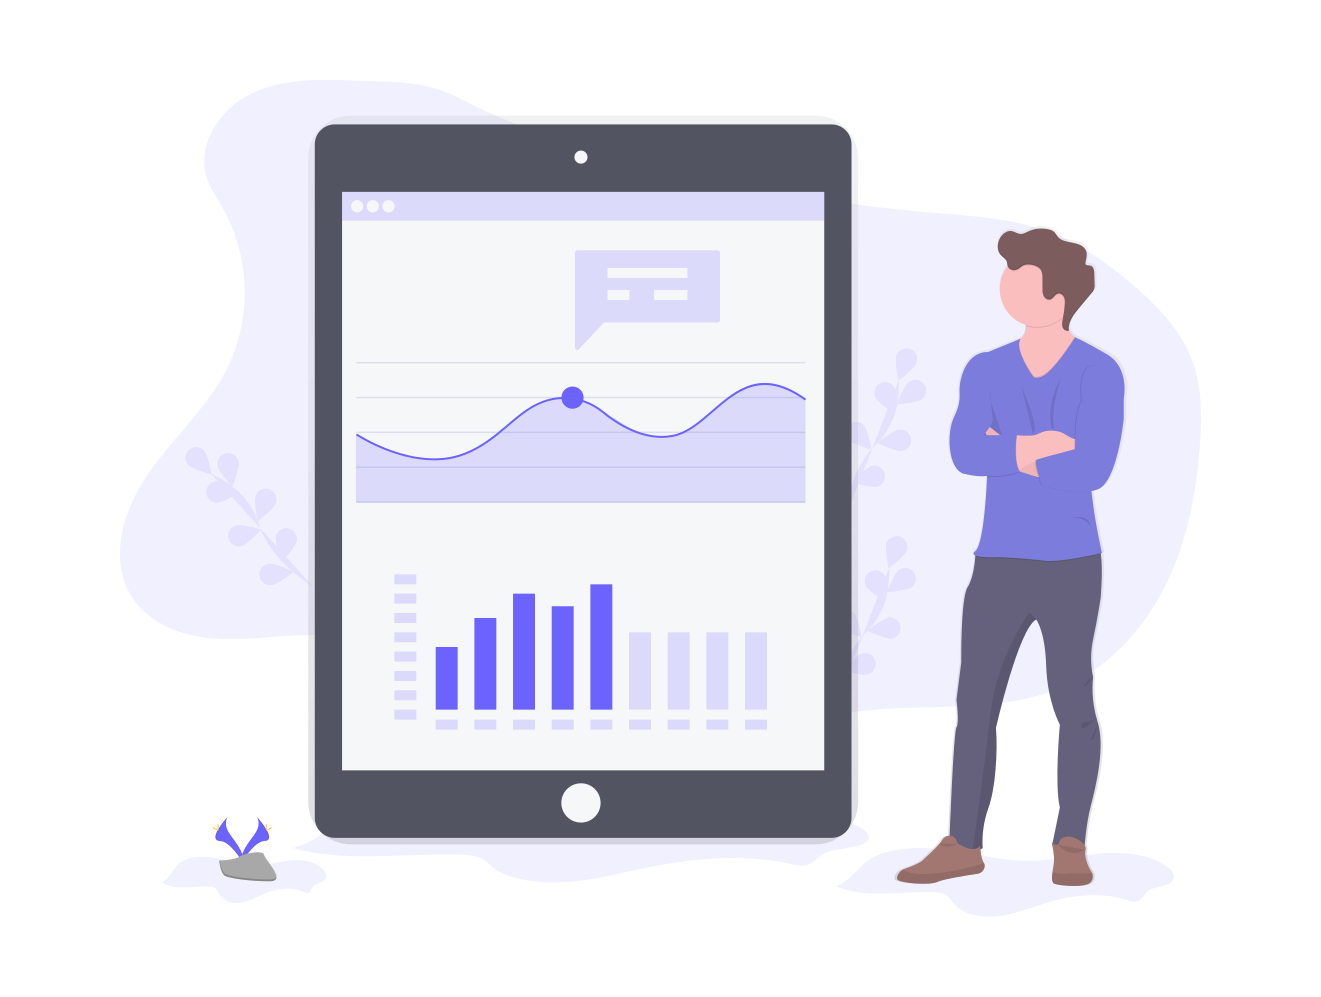 Create a dataset to train your chatbot